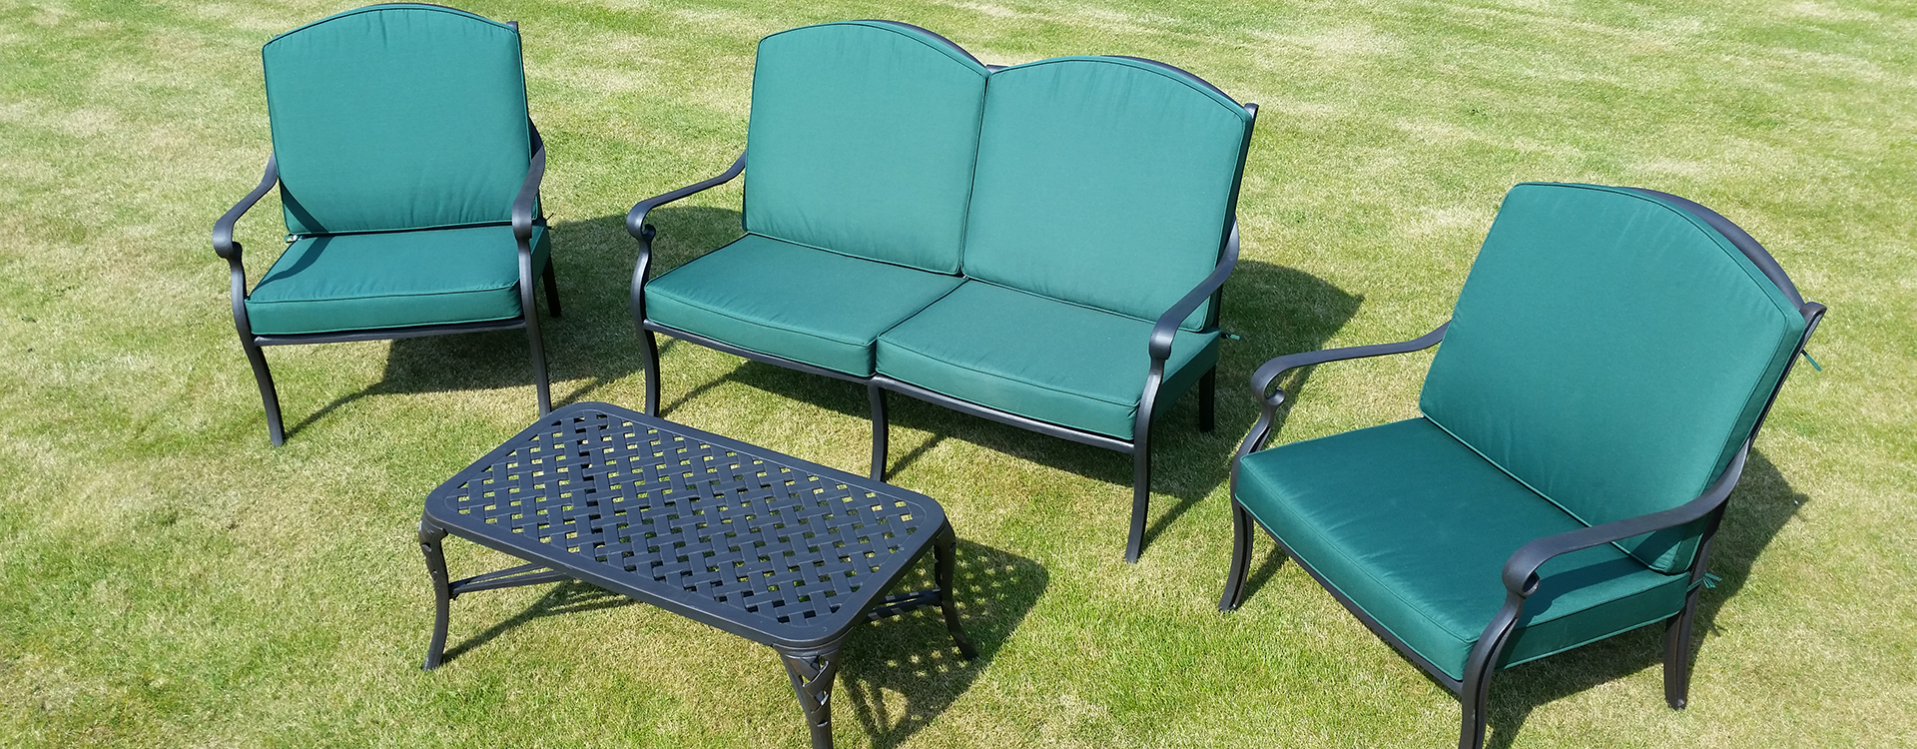 4 seasons garden furniture